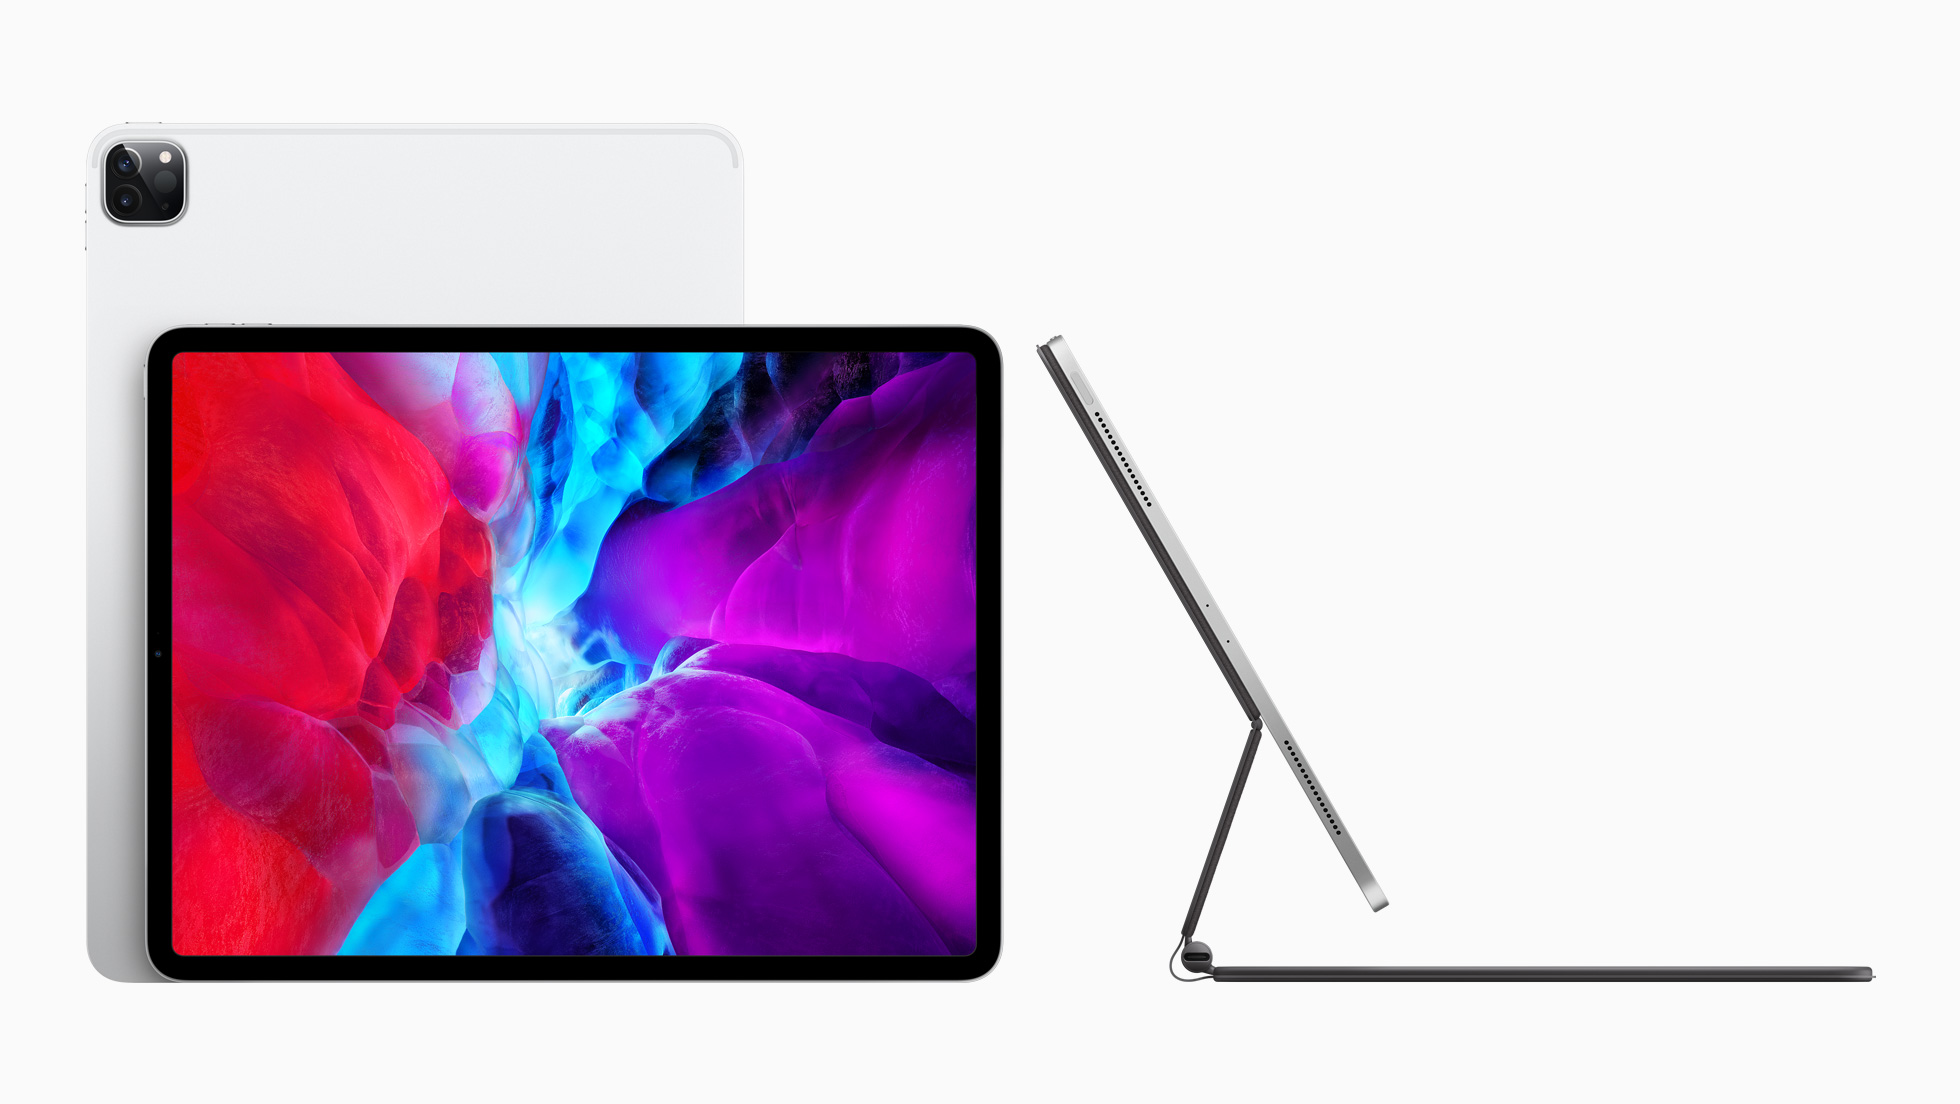 The A12Z SoC in the new iPad Pro is identical to the A12X, just with an extra GPU core enabled